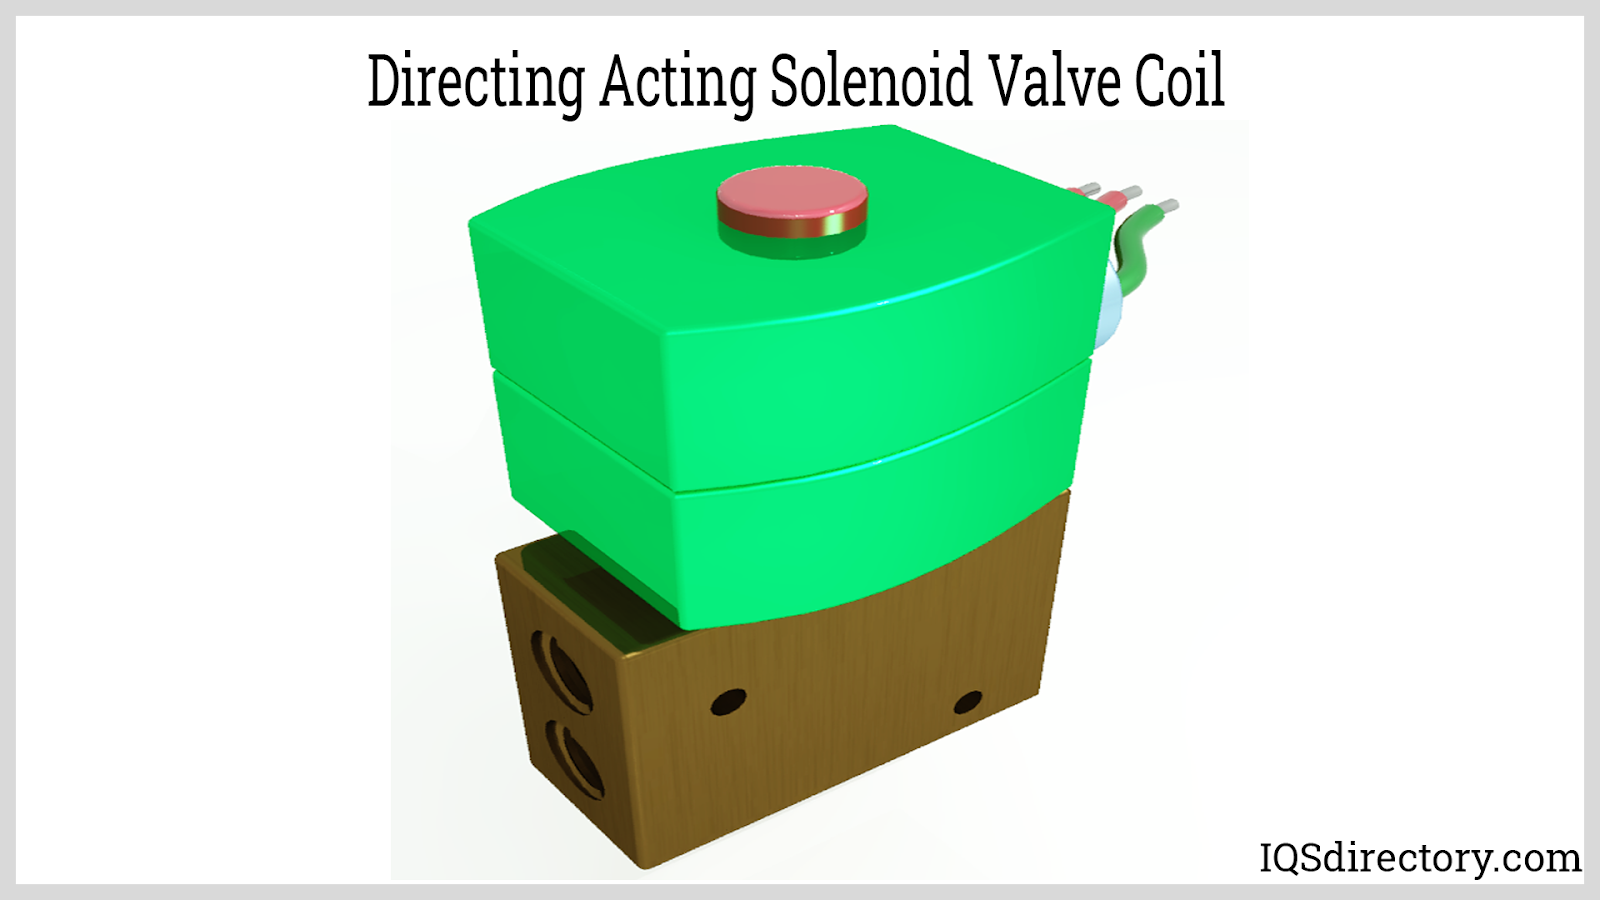 Directing Acting Solenoid Valve Coil